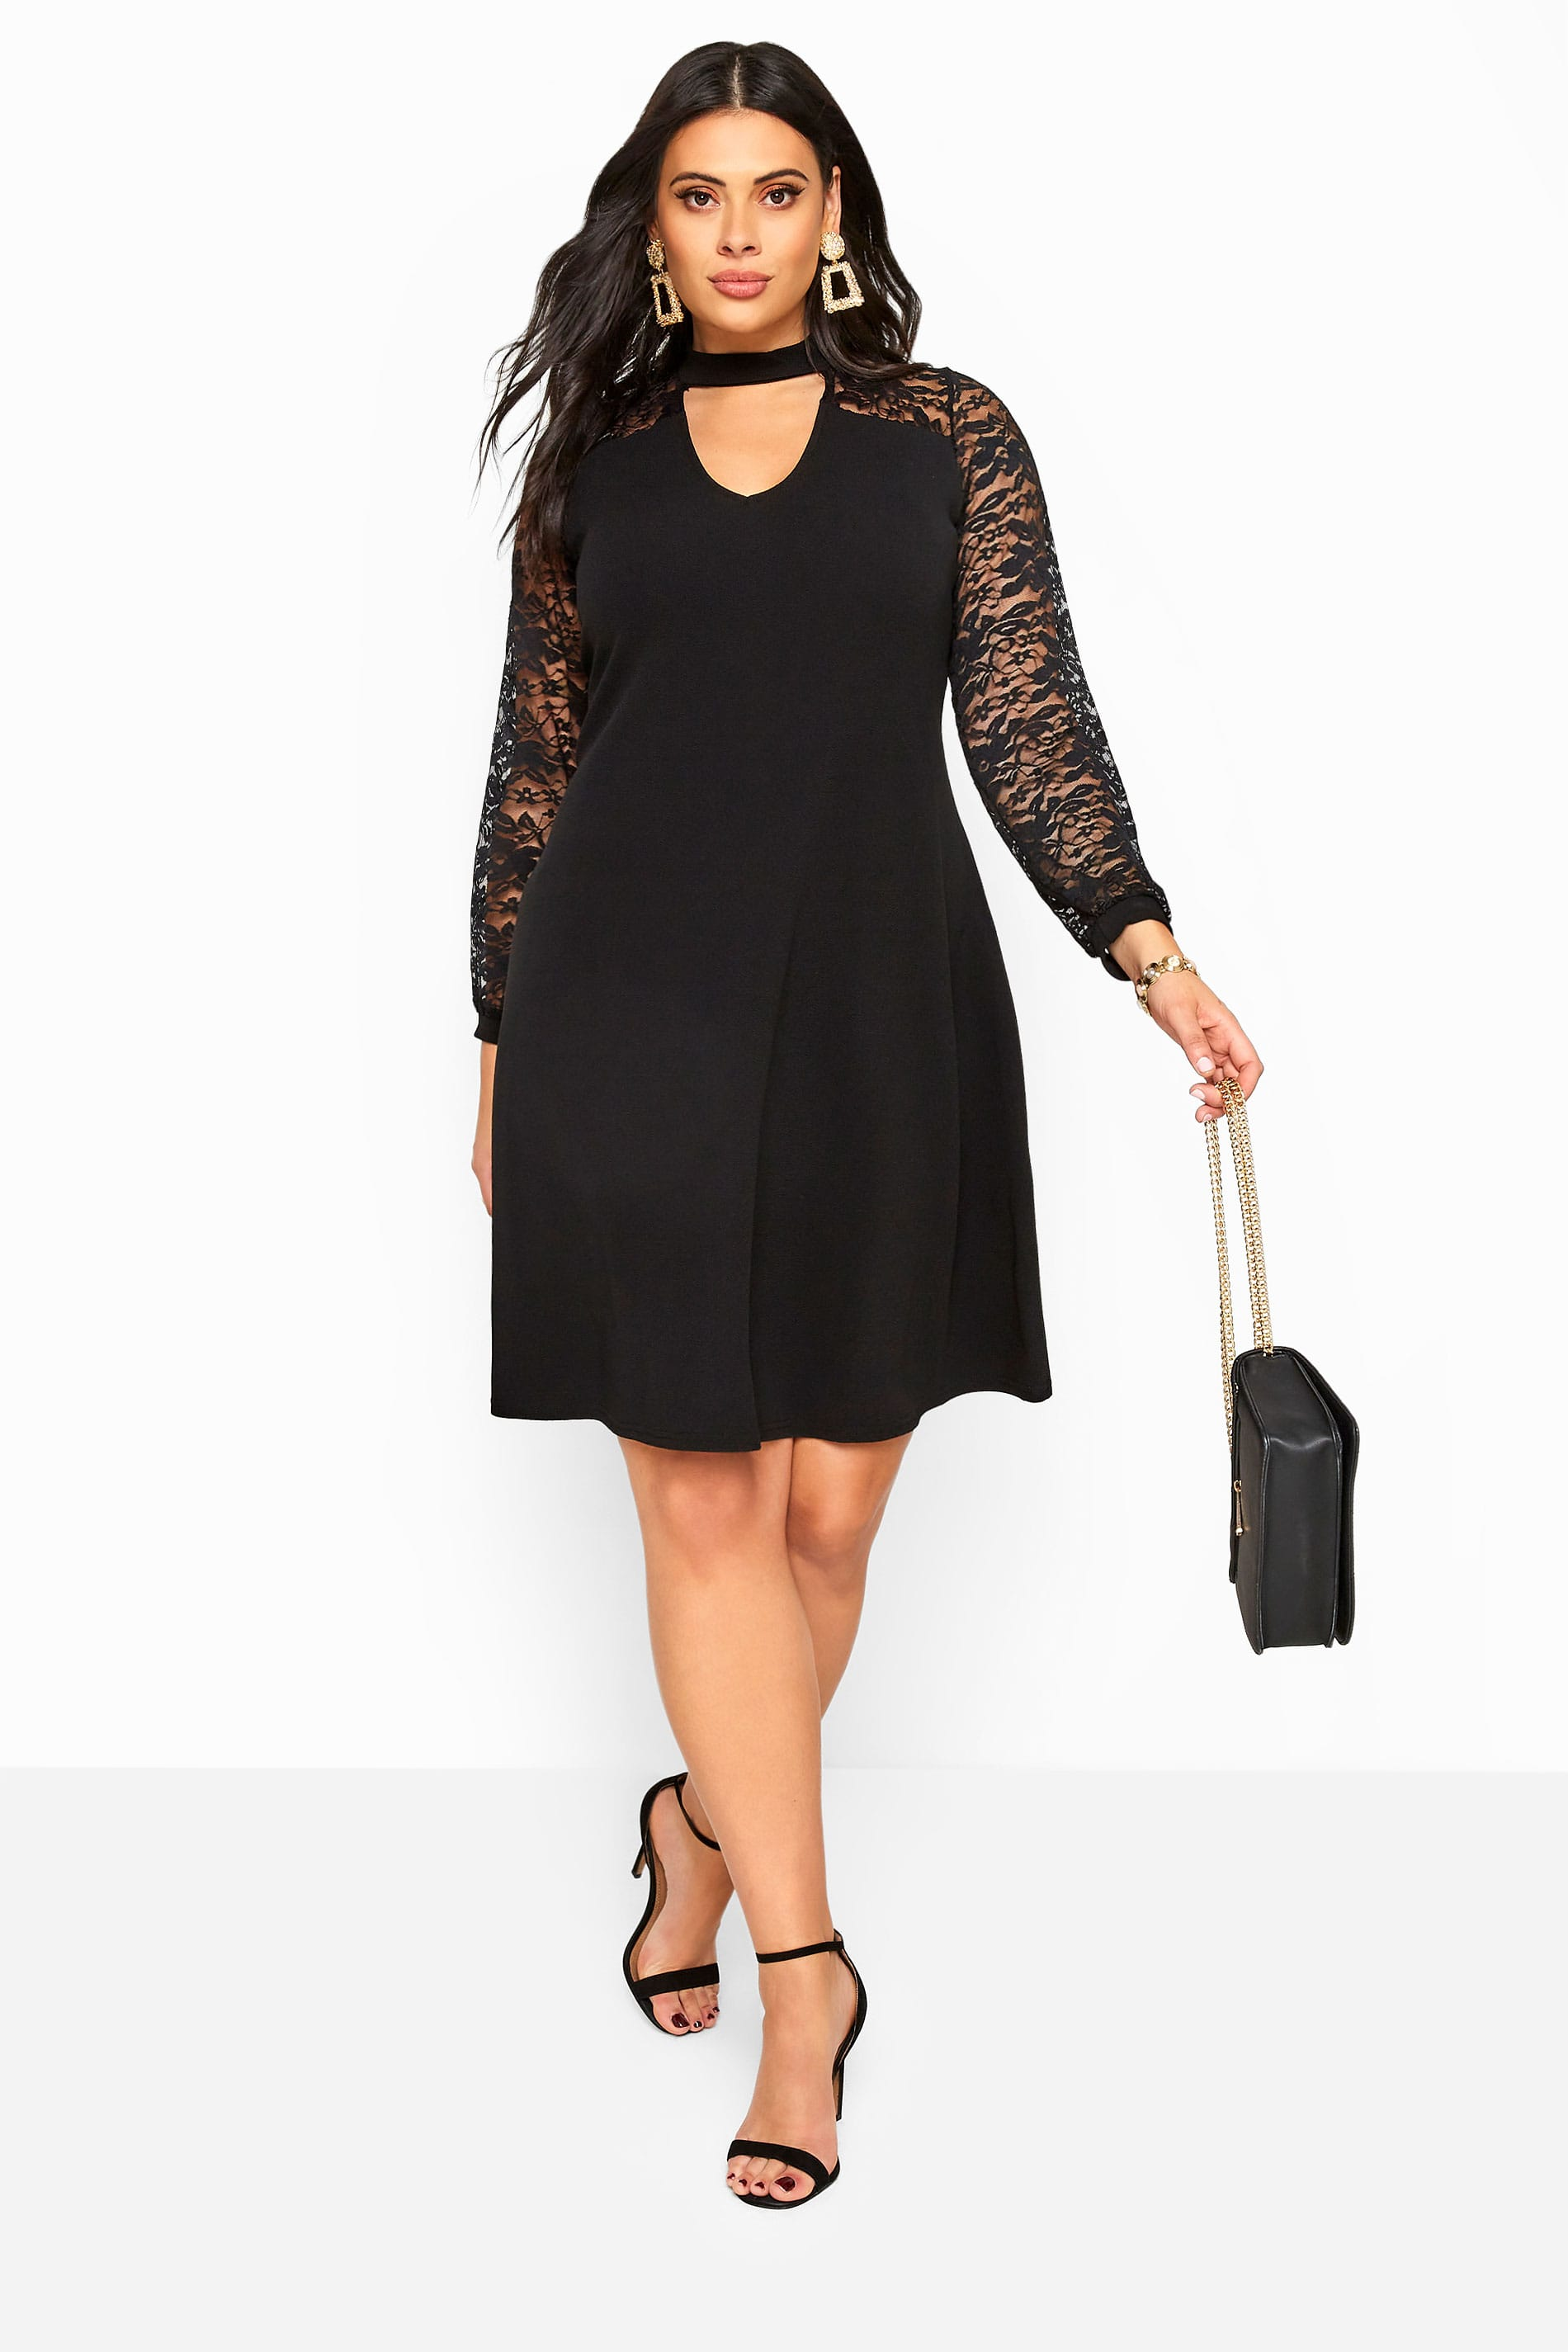 Black Lace Choker Dress